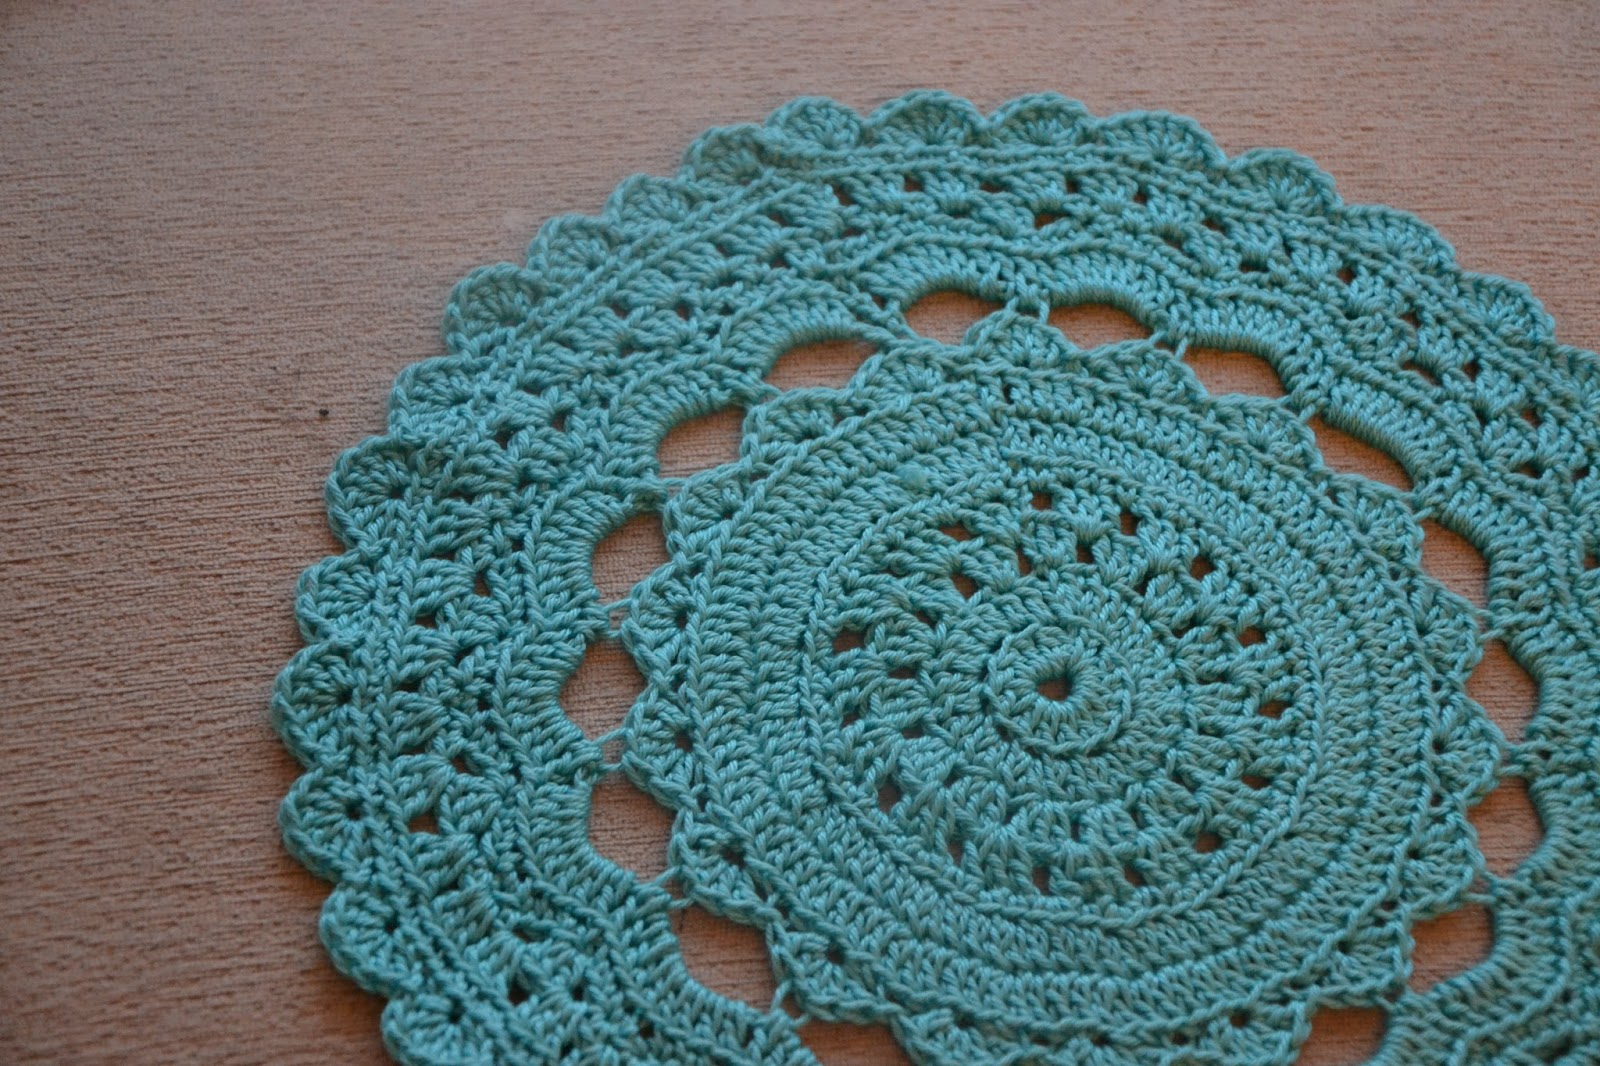 Crocheting Circles : Tadpegs: Crochet A Circle Cushion With Free Pattern